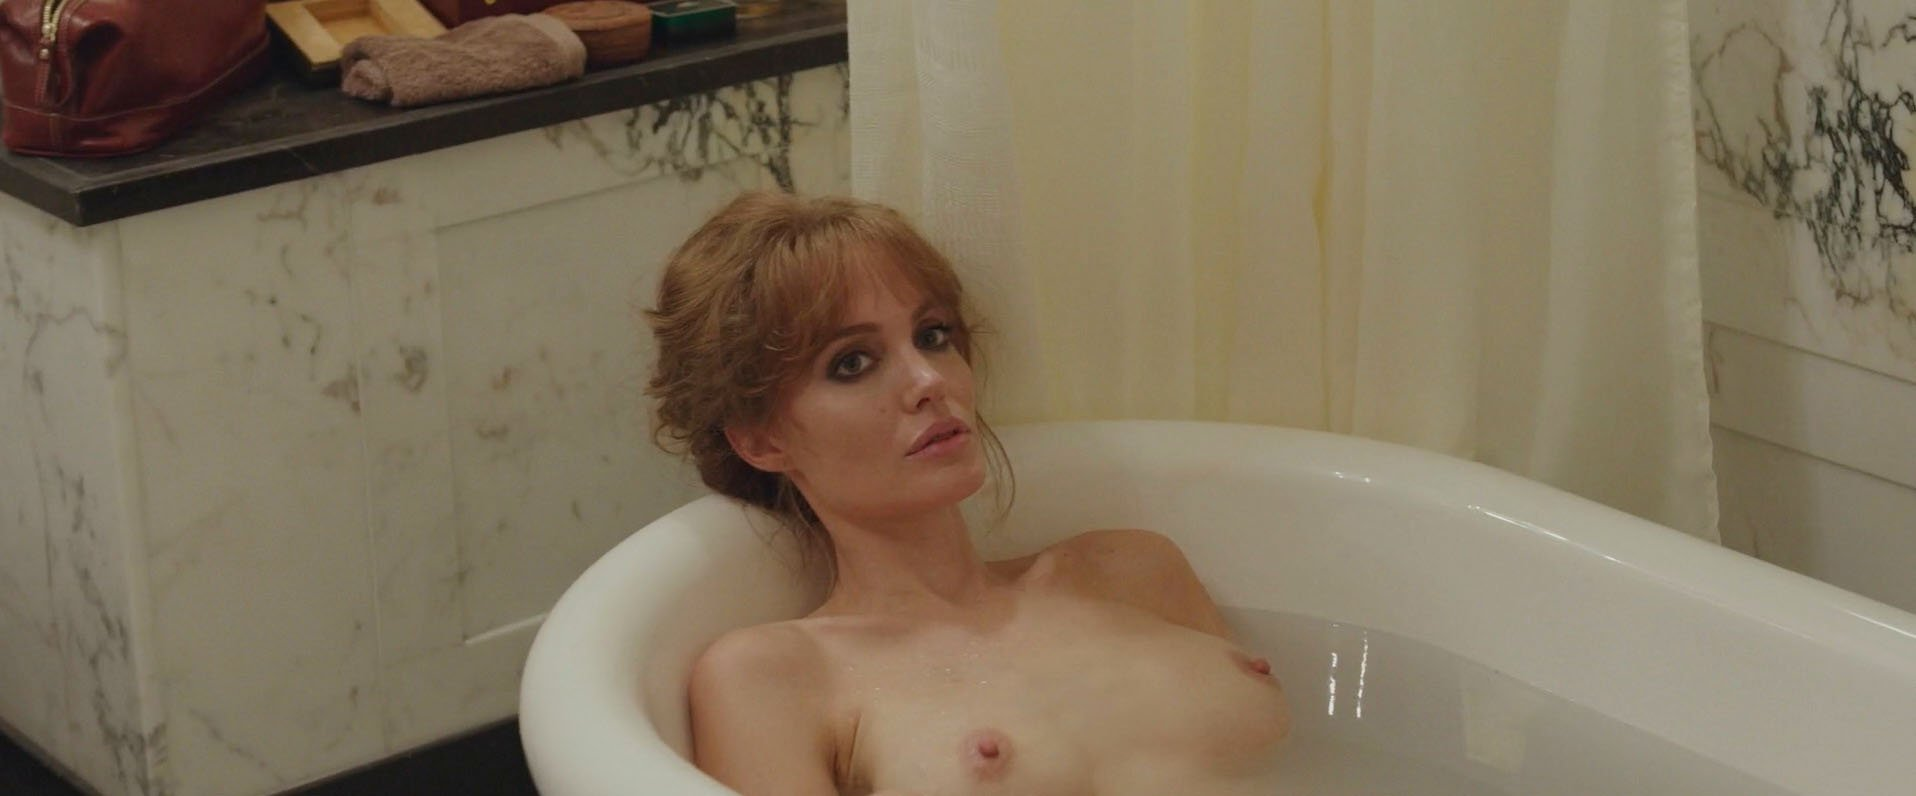 angelina jolie young body nude